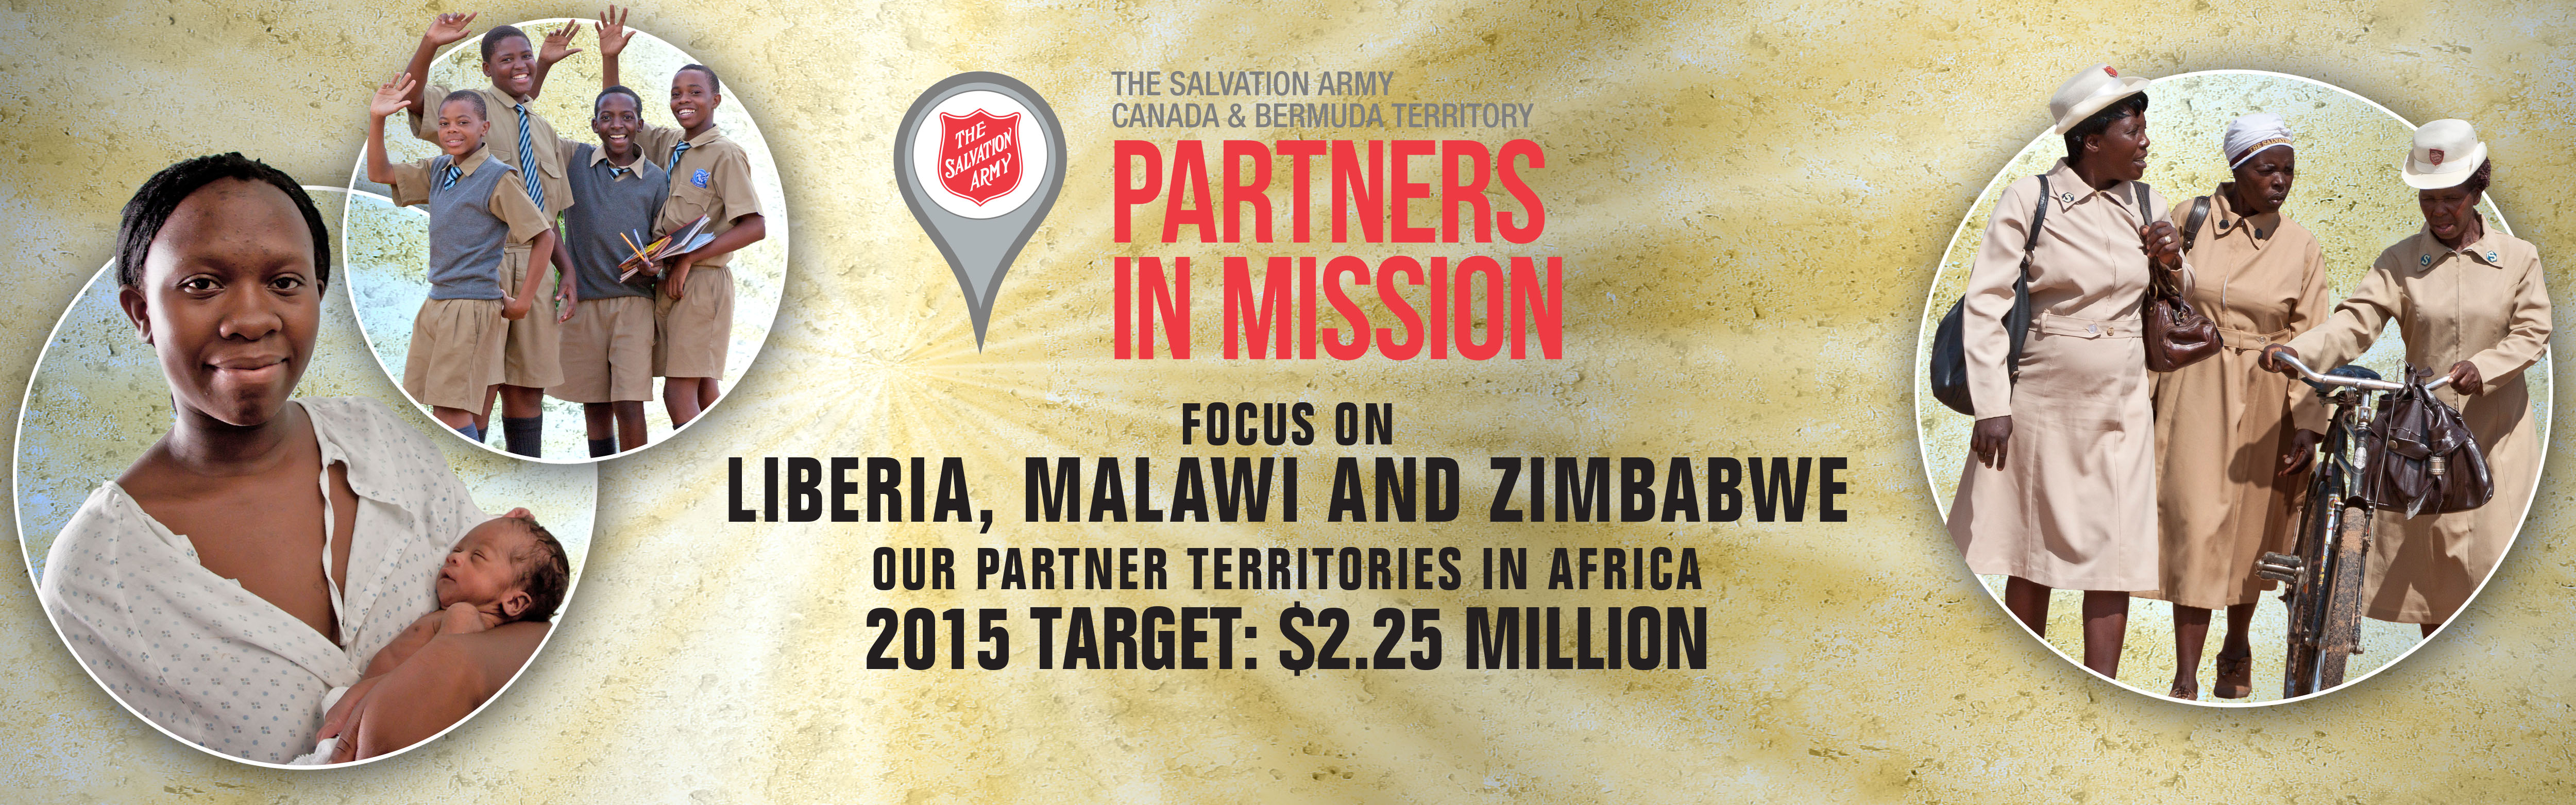 Partners-in-Mission-2015-Website-Banner